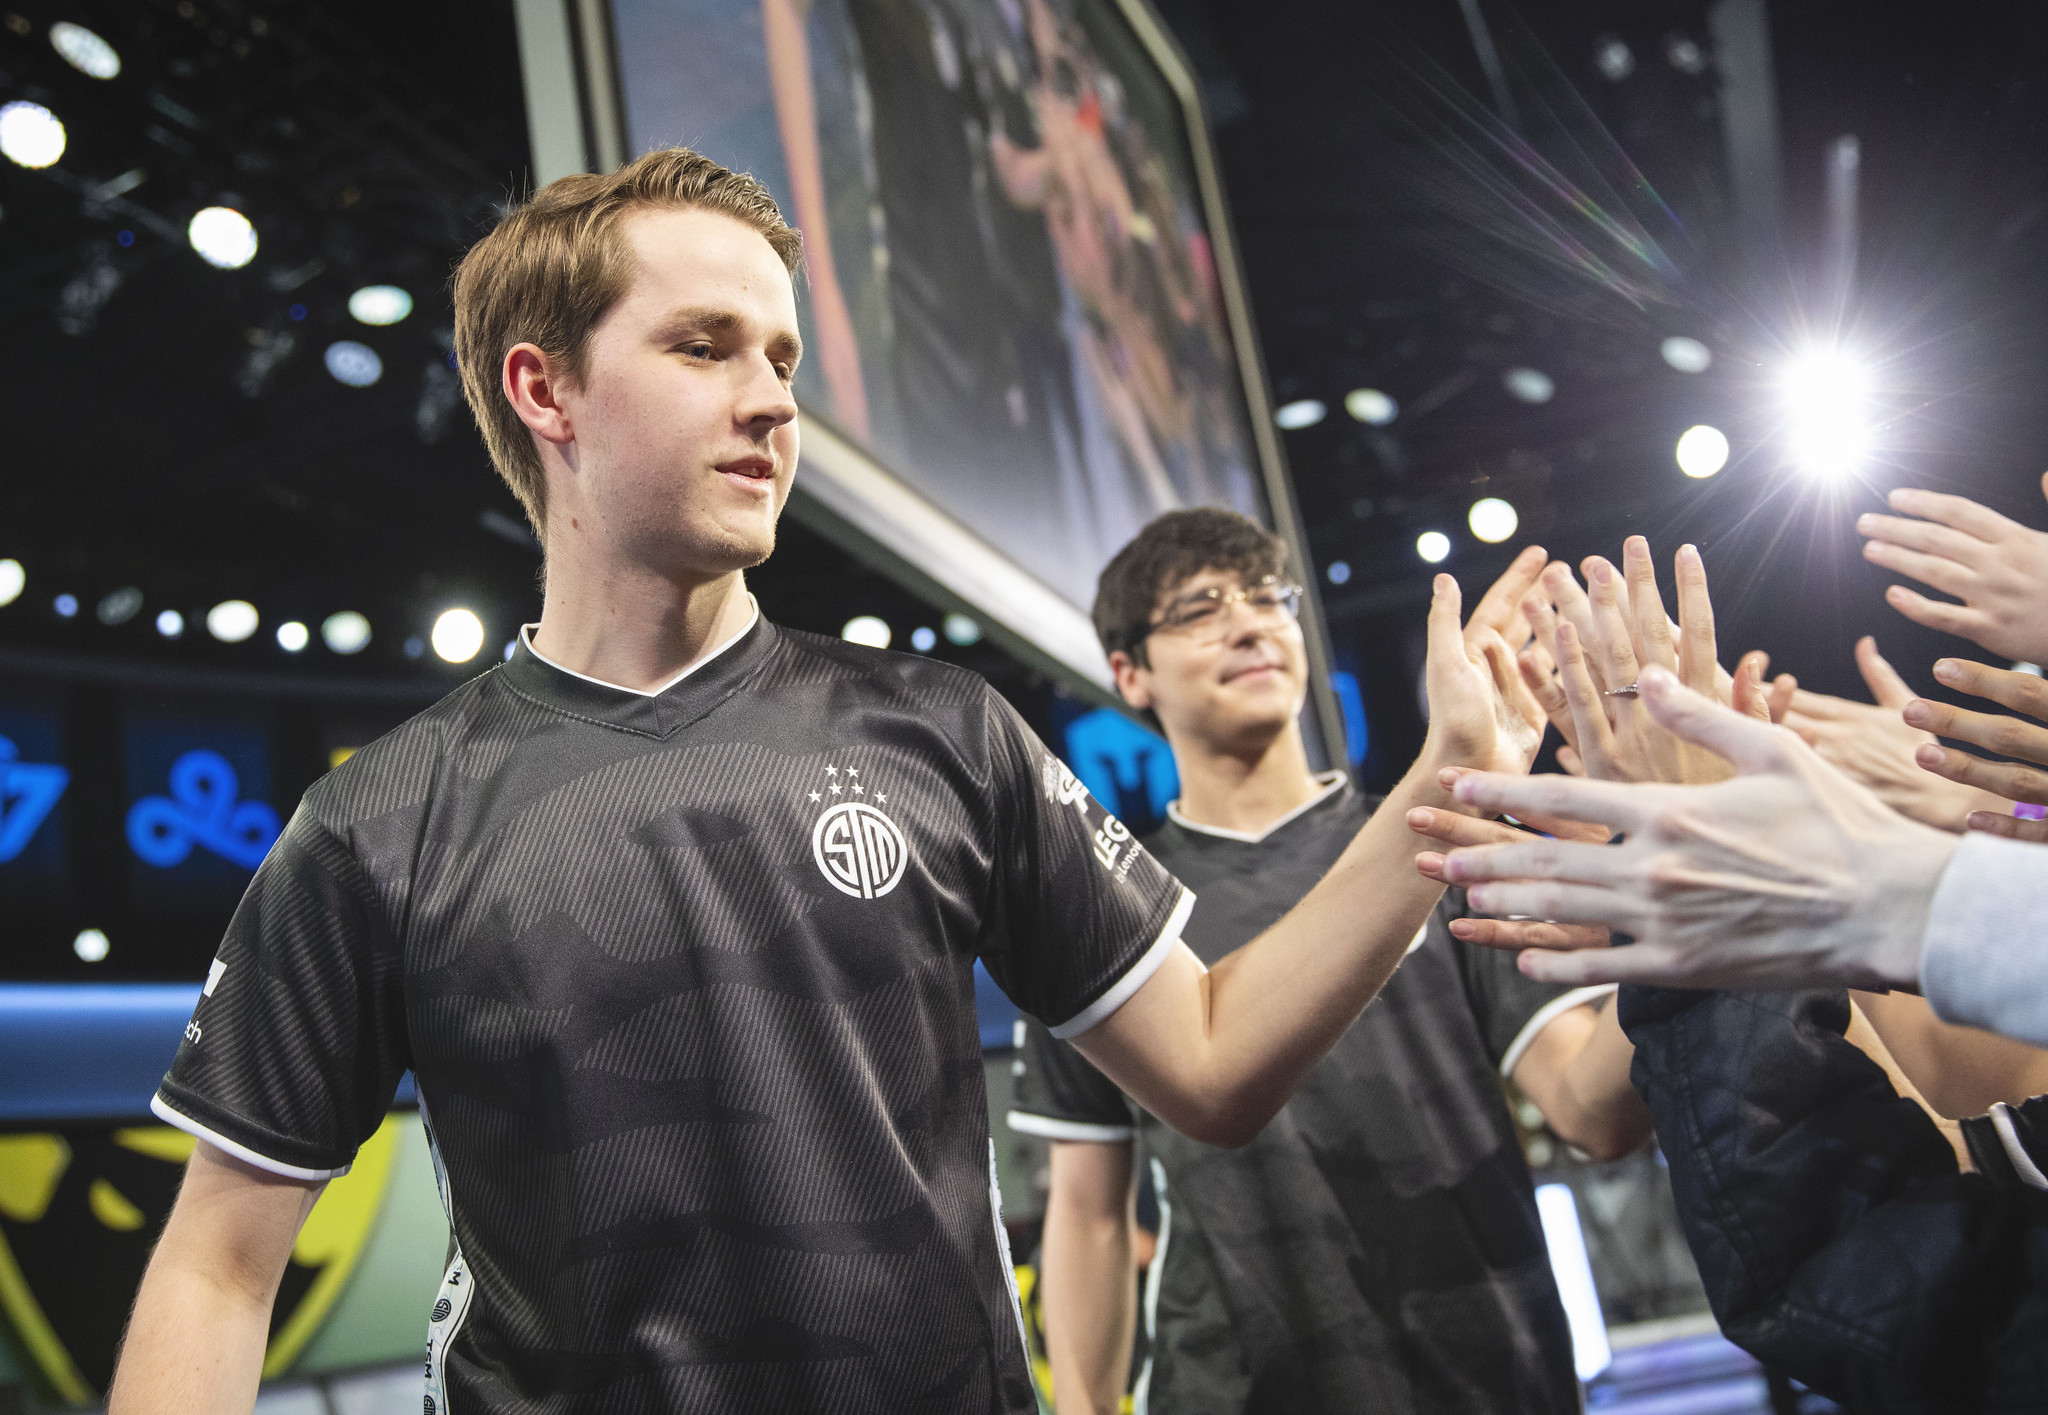 Kobbe high fiving TSM fans during LCS